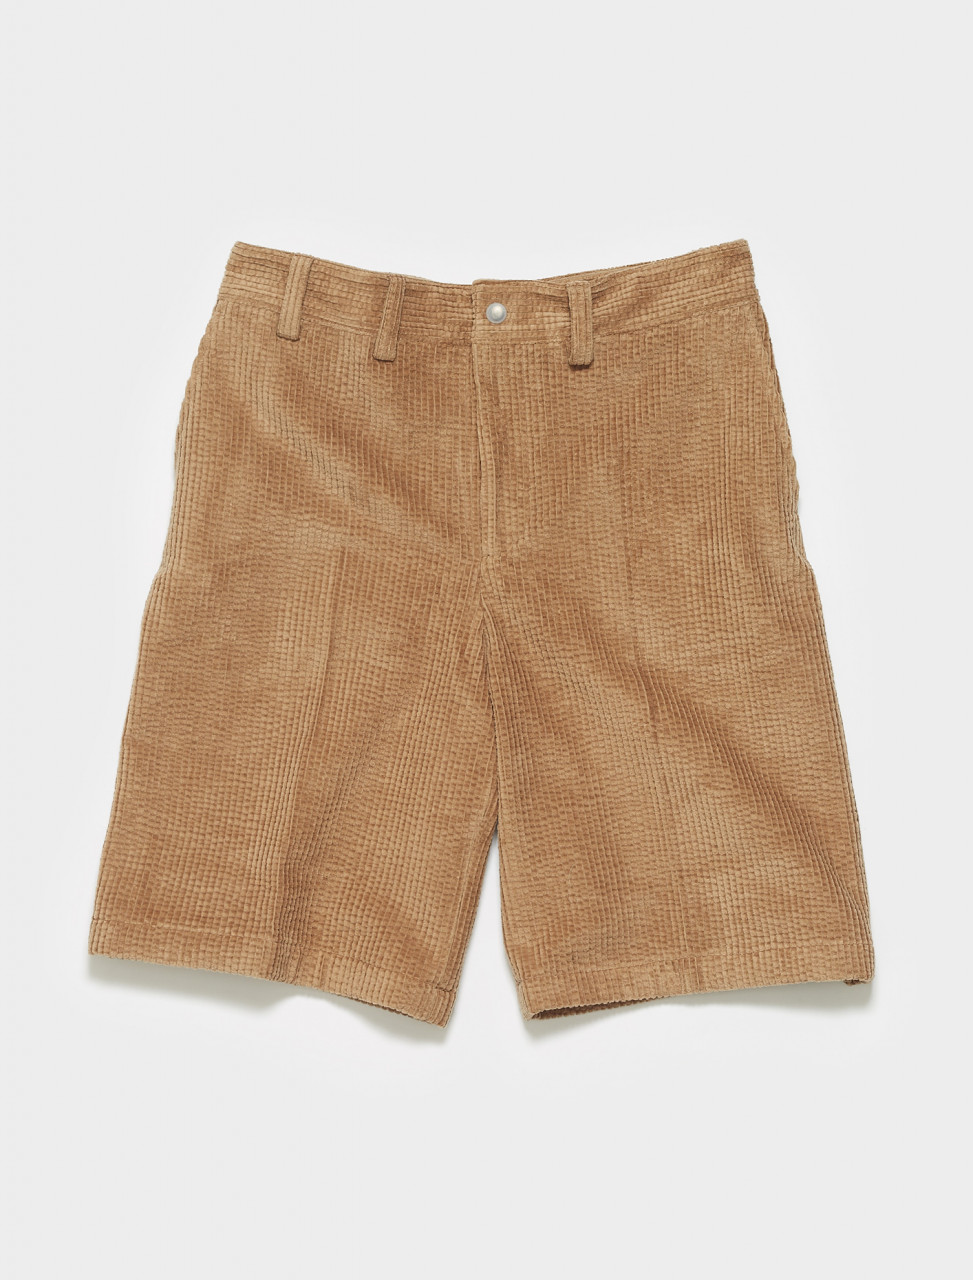 BE0055-640 ACNE STUDIOS ROSS CORD SHORTS IN CAMEL BROWN